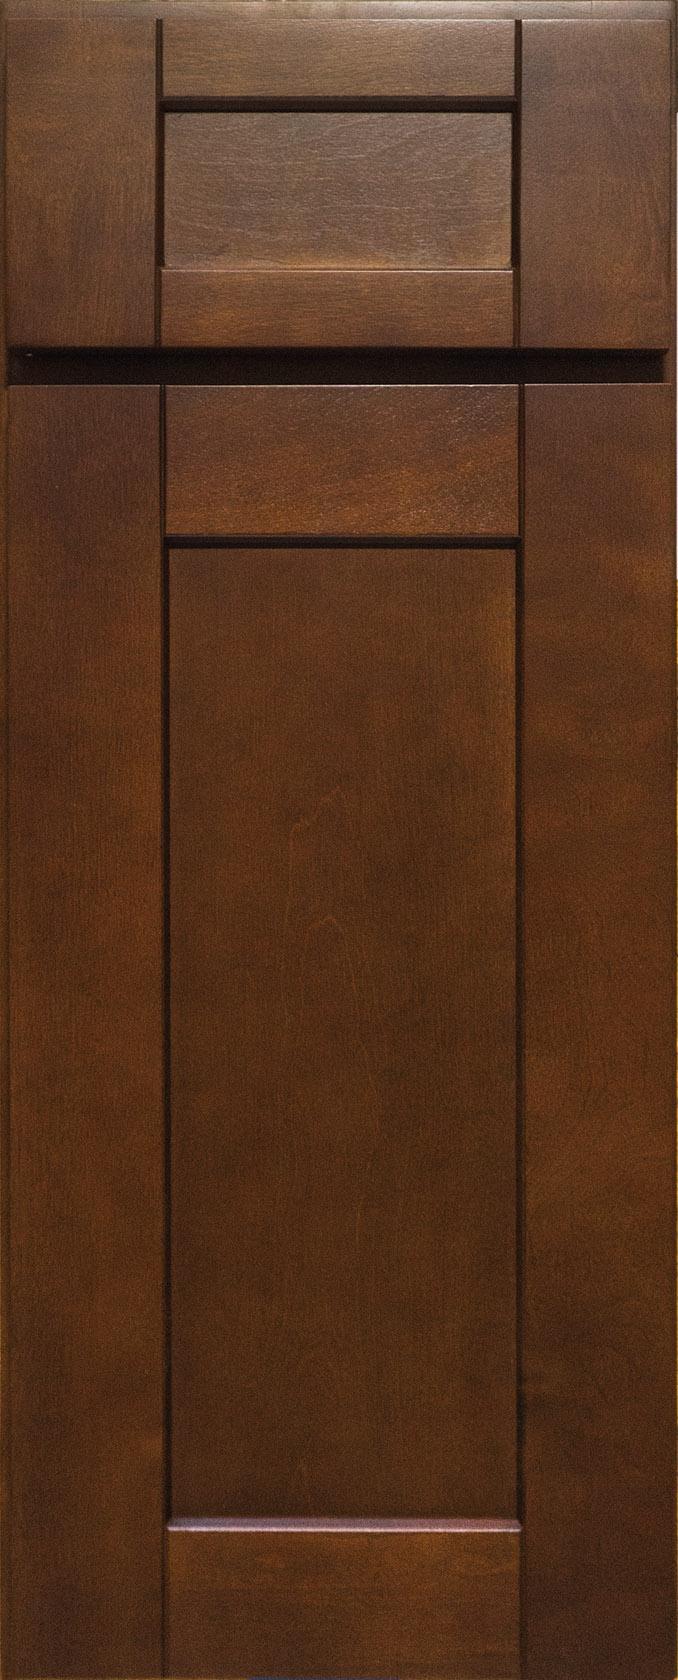 Brandywine Shaker Sample Door